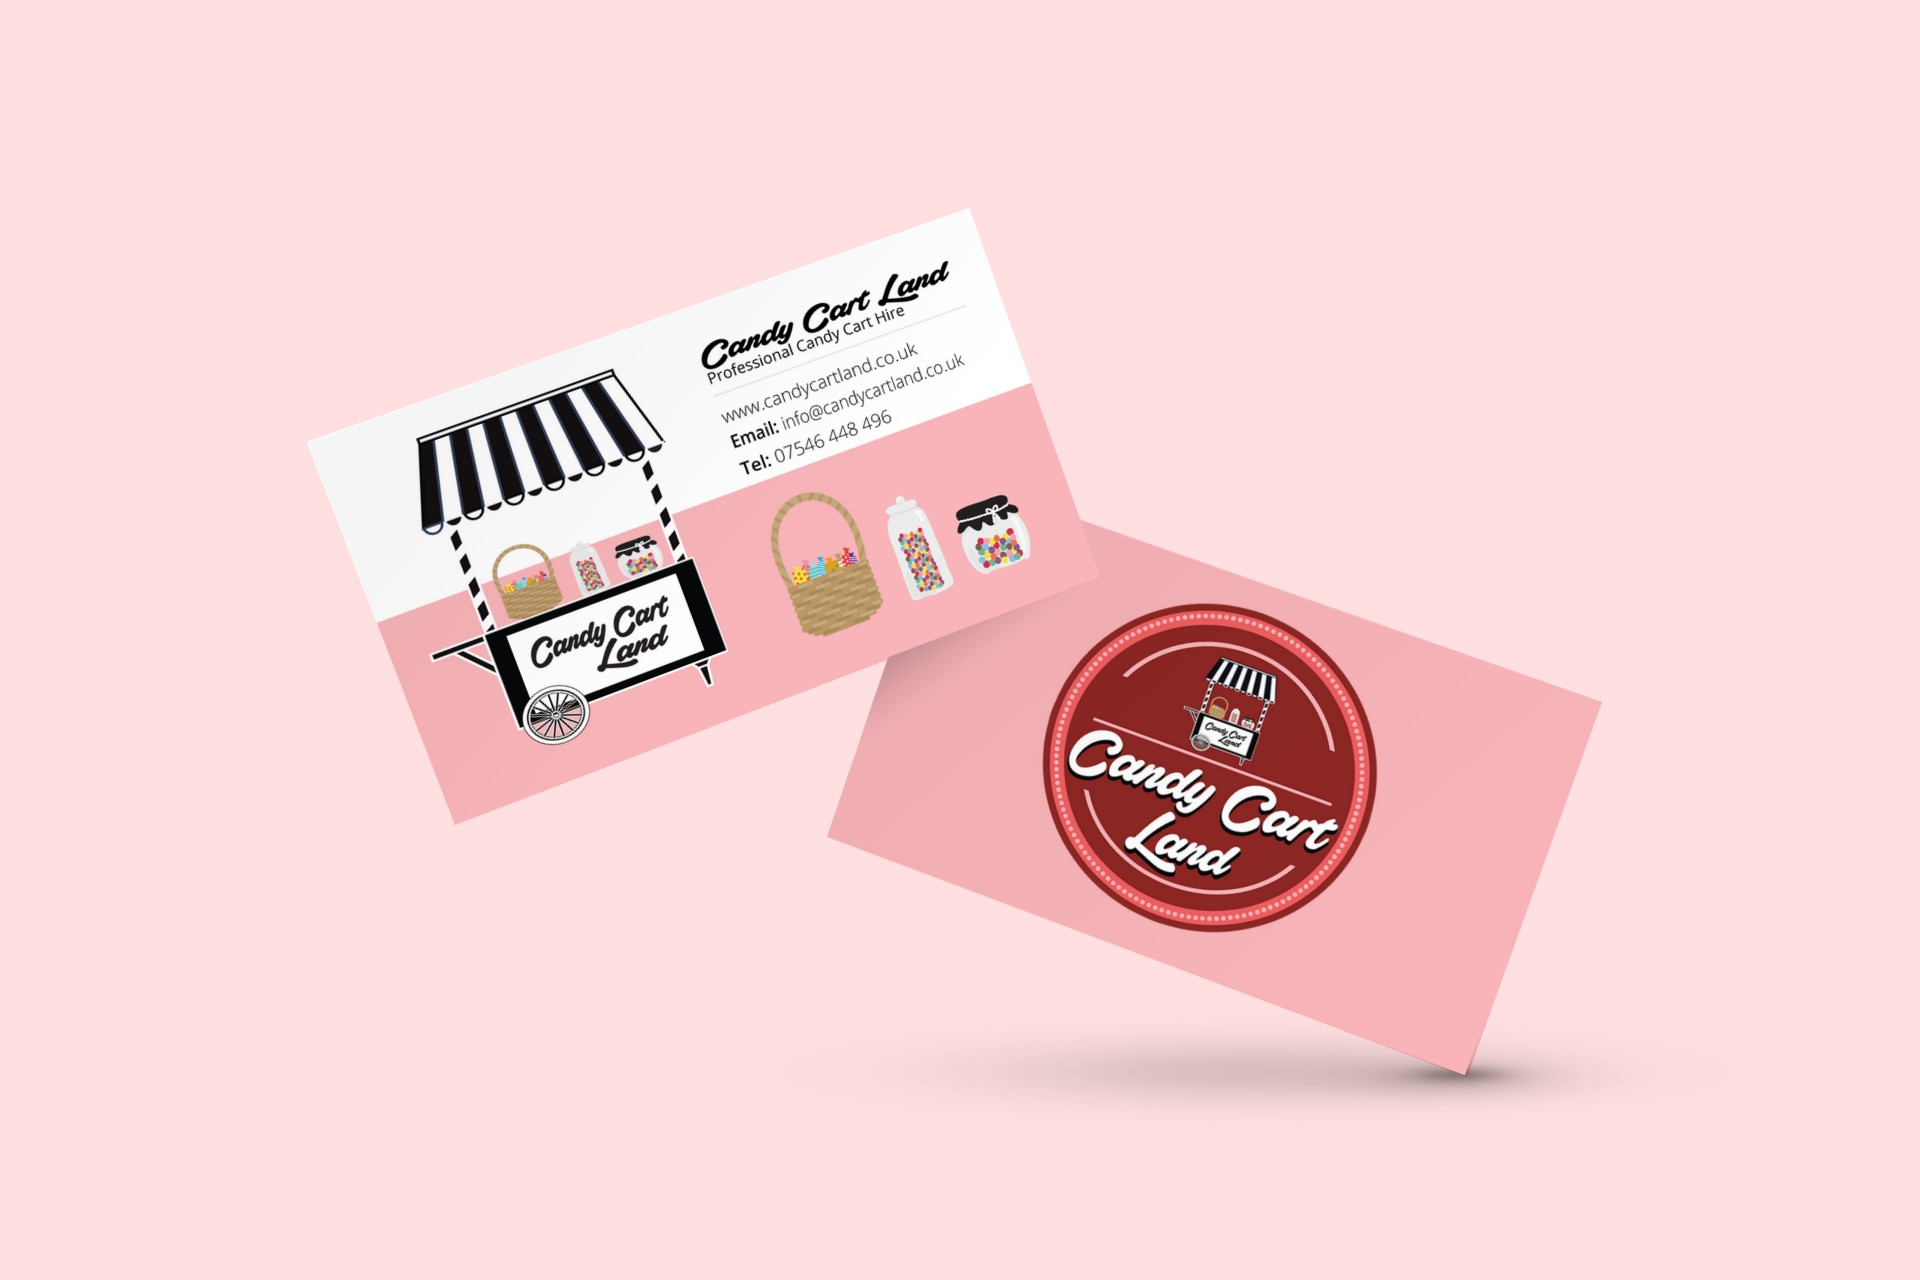 Business card archives the logo creative logo design brand candy cart land sweet cart hire rotherham sheffield doncaster barnsley south yorkshire colourmoves Image collections